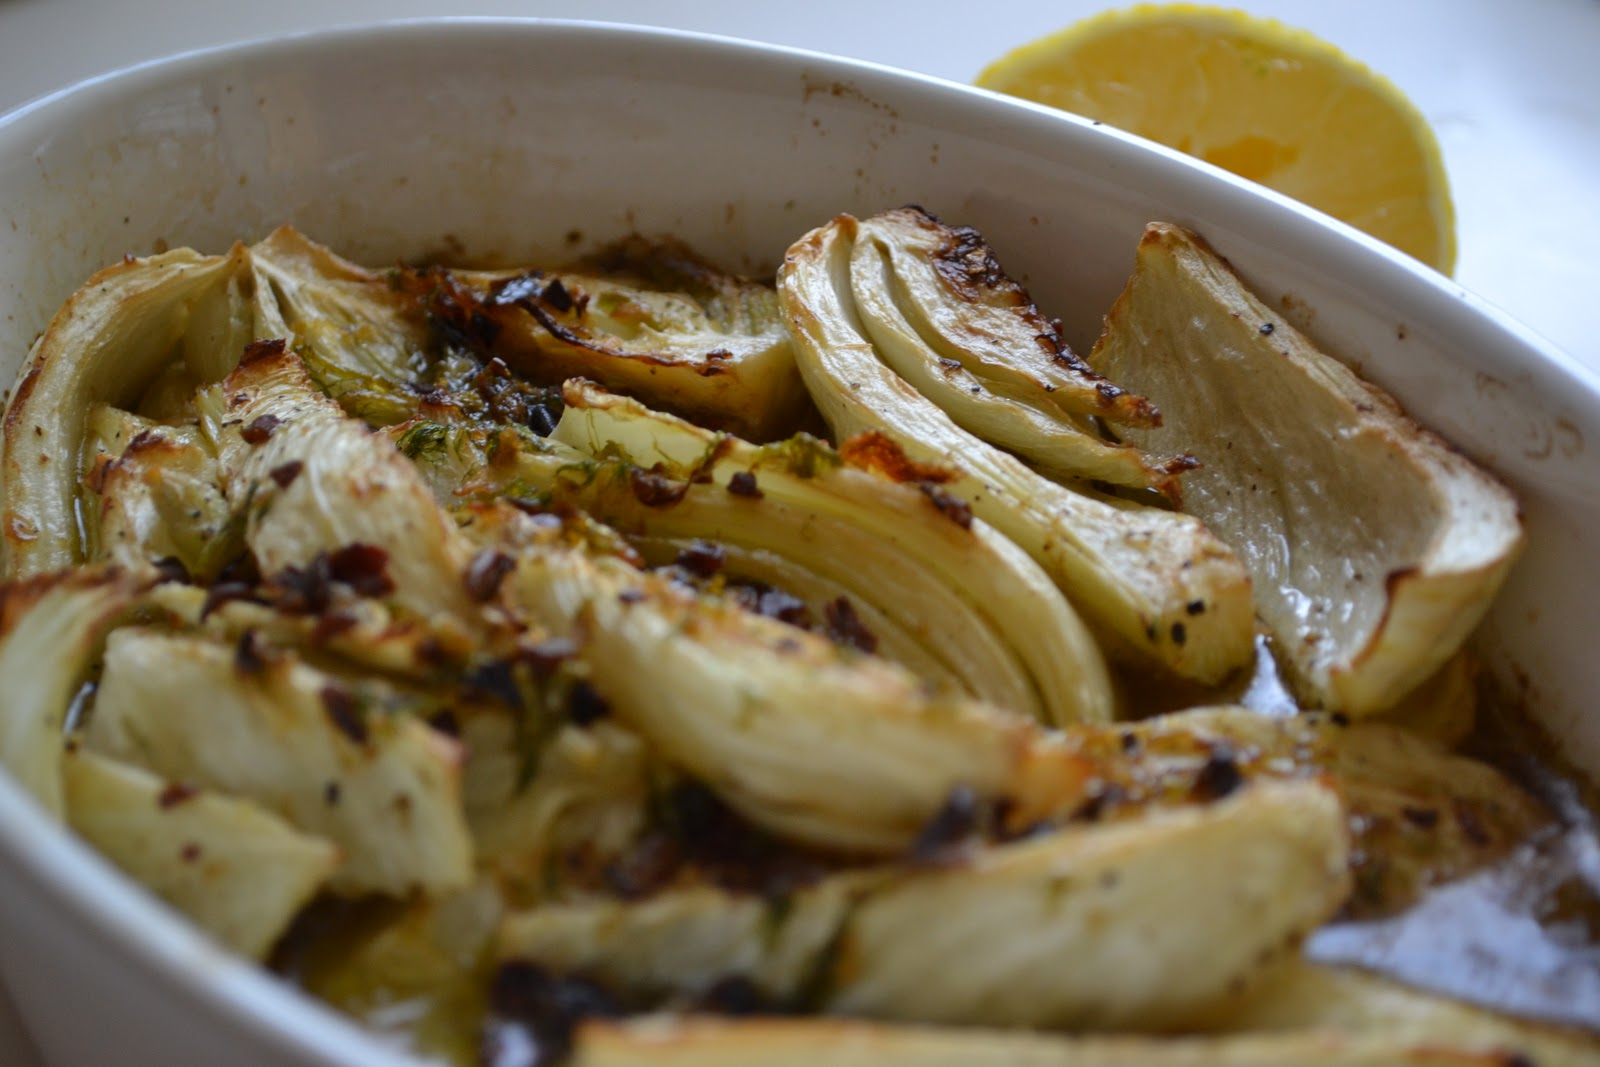 ... toasted fennel vinaigrette fennel mushrooms fennel gratin fennel syrup